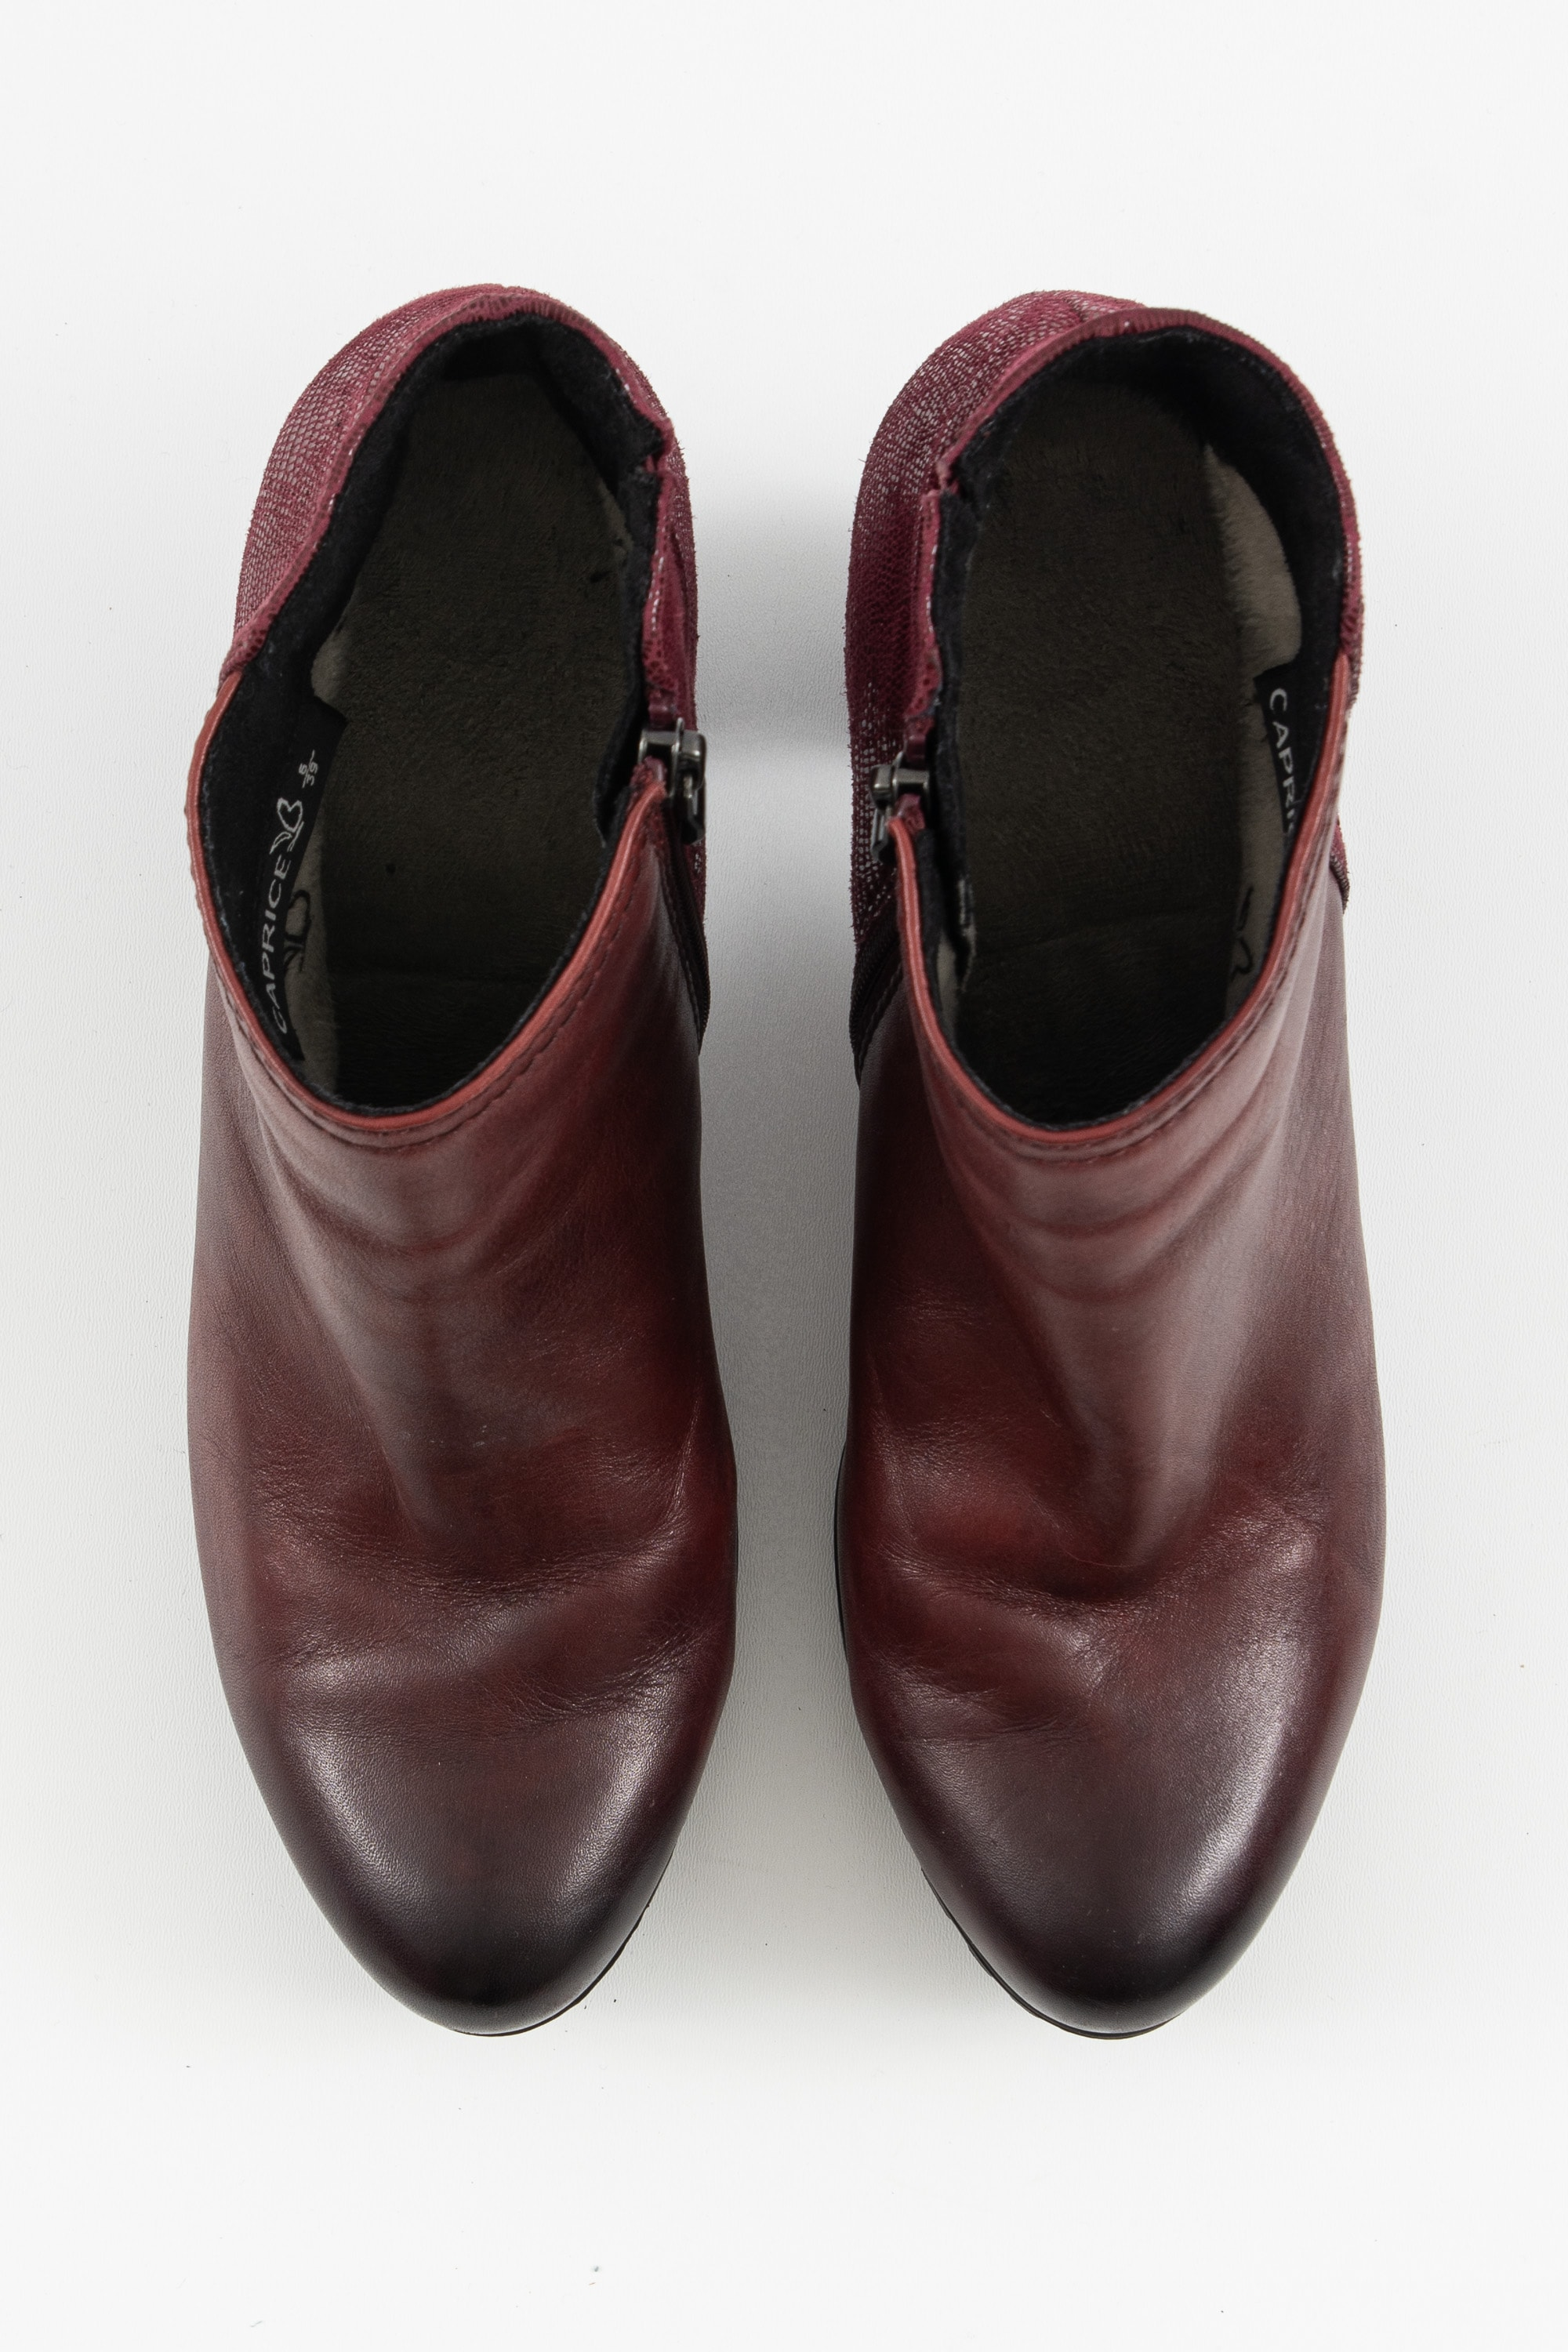 Caprice Stiefel / Stiefelette / Boots Rot Gr.39.5